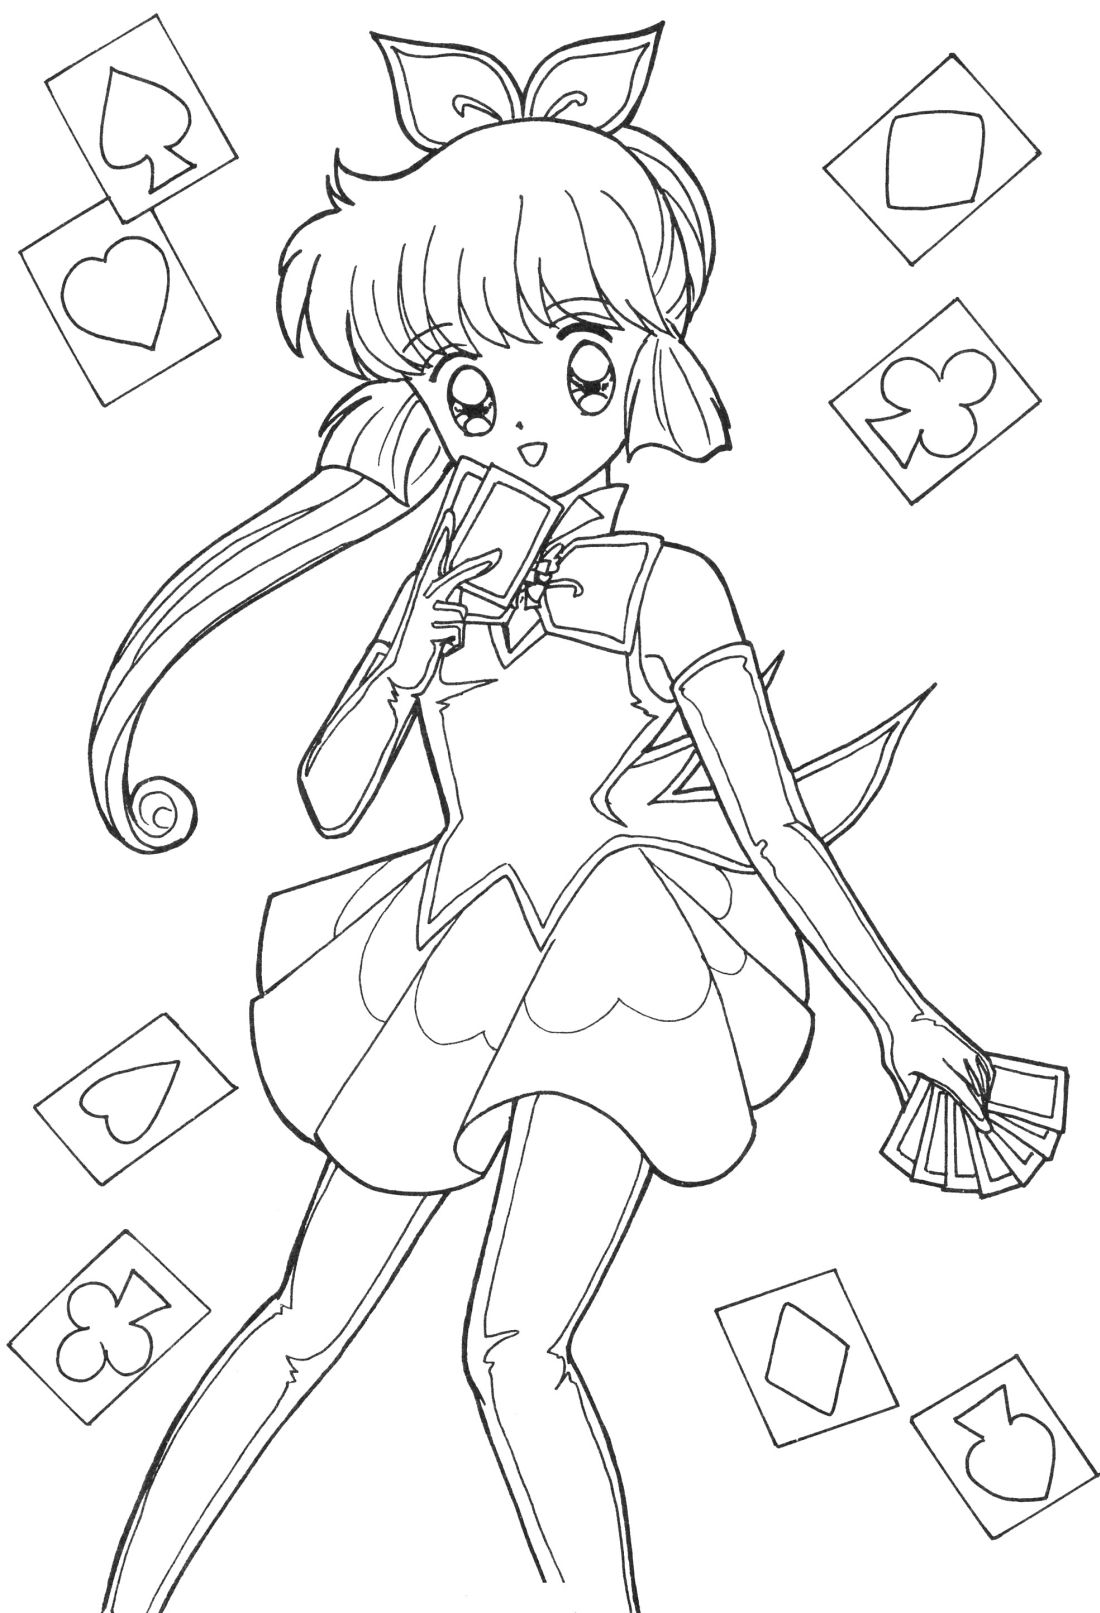 japanese anime girl coloring pages anime lineart vintage coloring books coloring book art pages anime girl japanese coloring